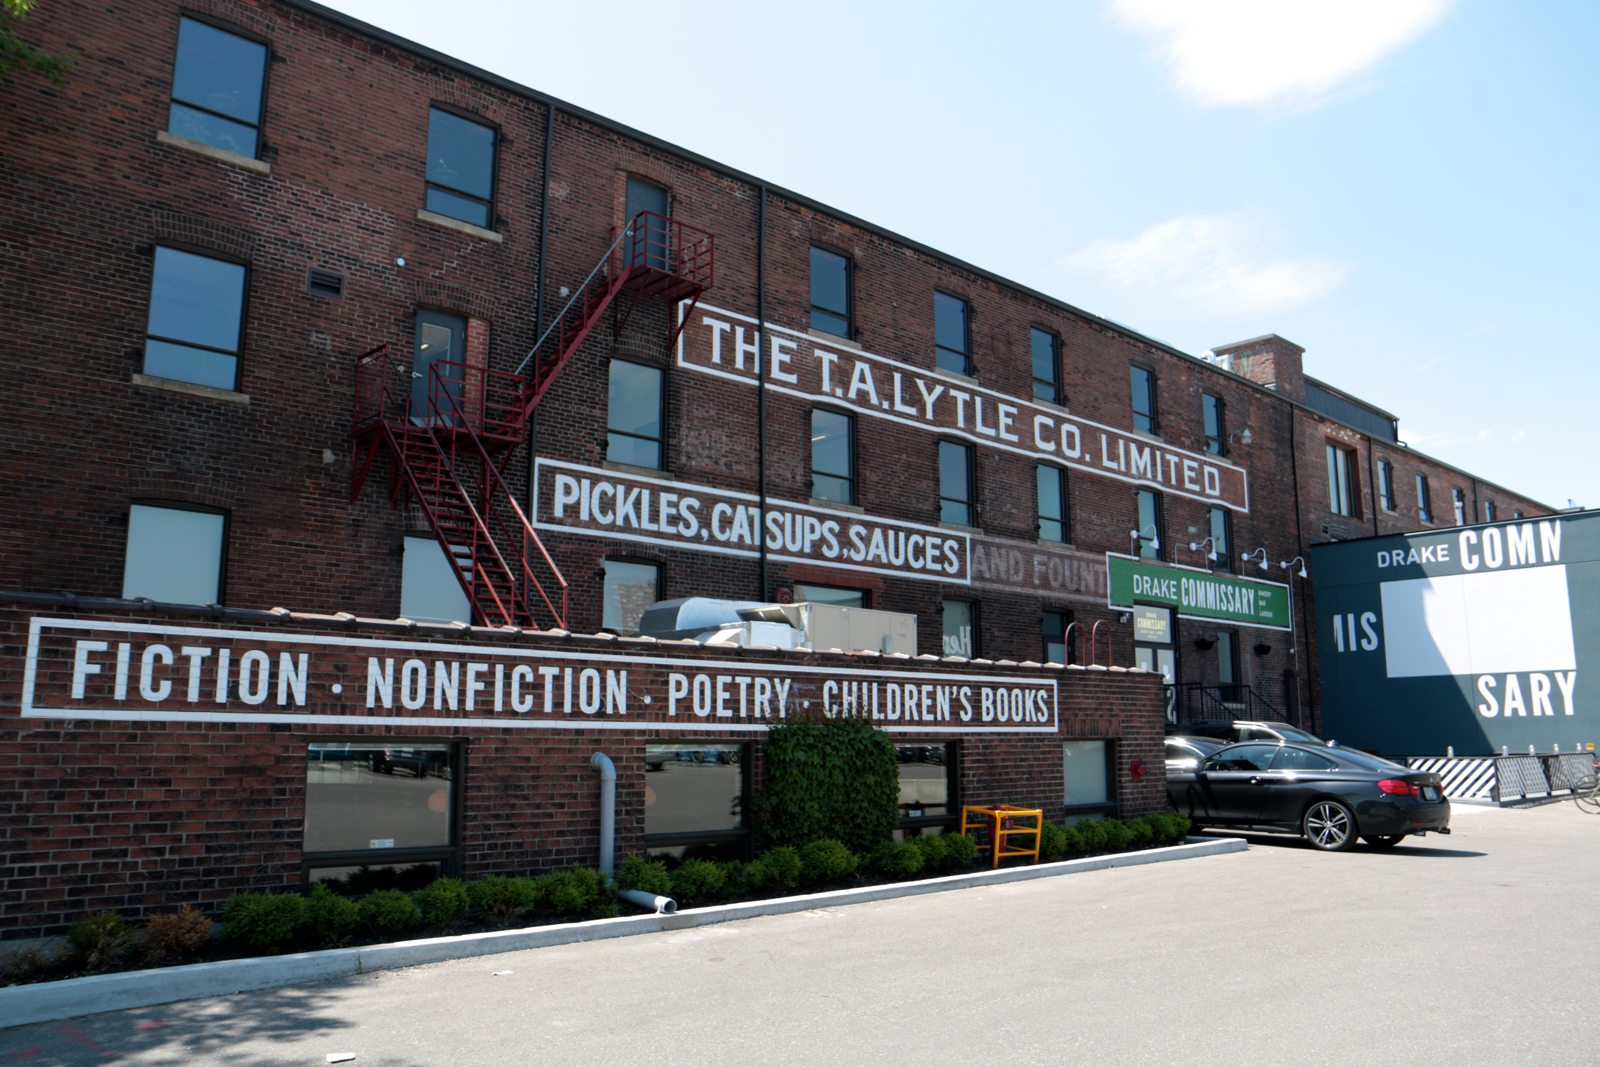 Appropriately enough, the new Drake lives in part of the old T.A. Lytle condiment factory.